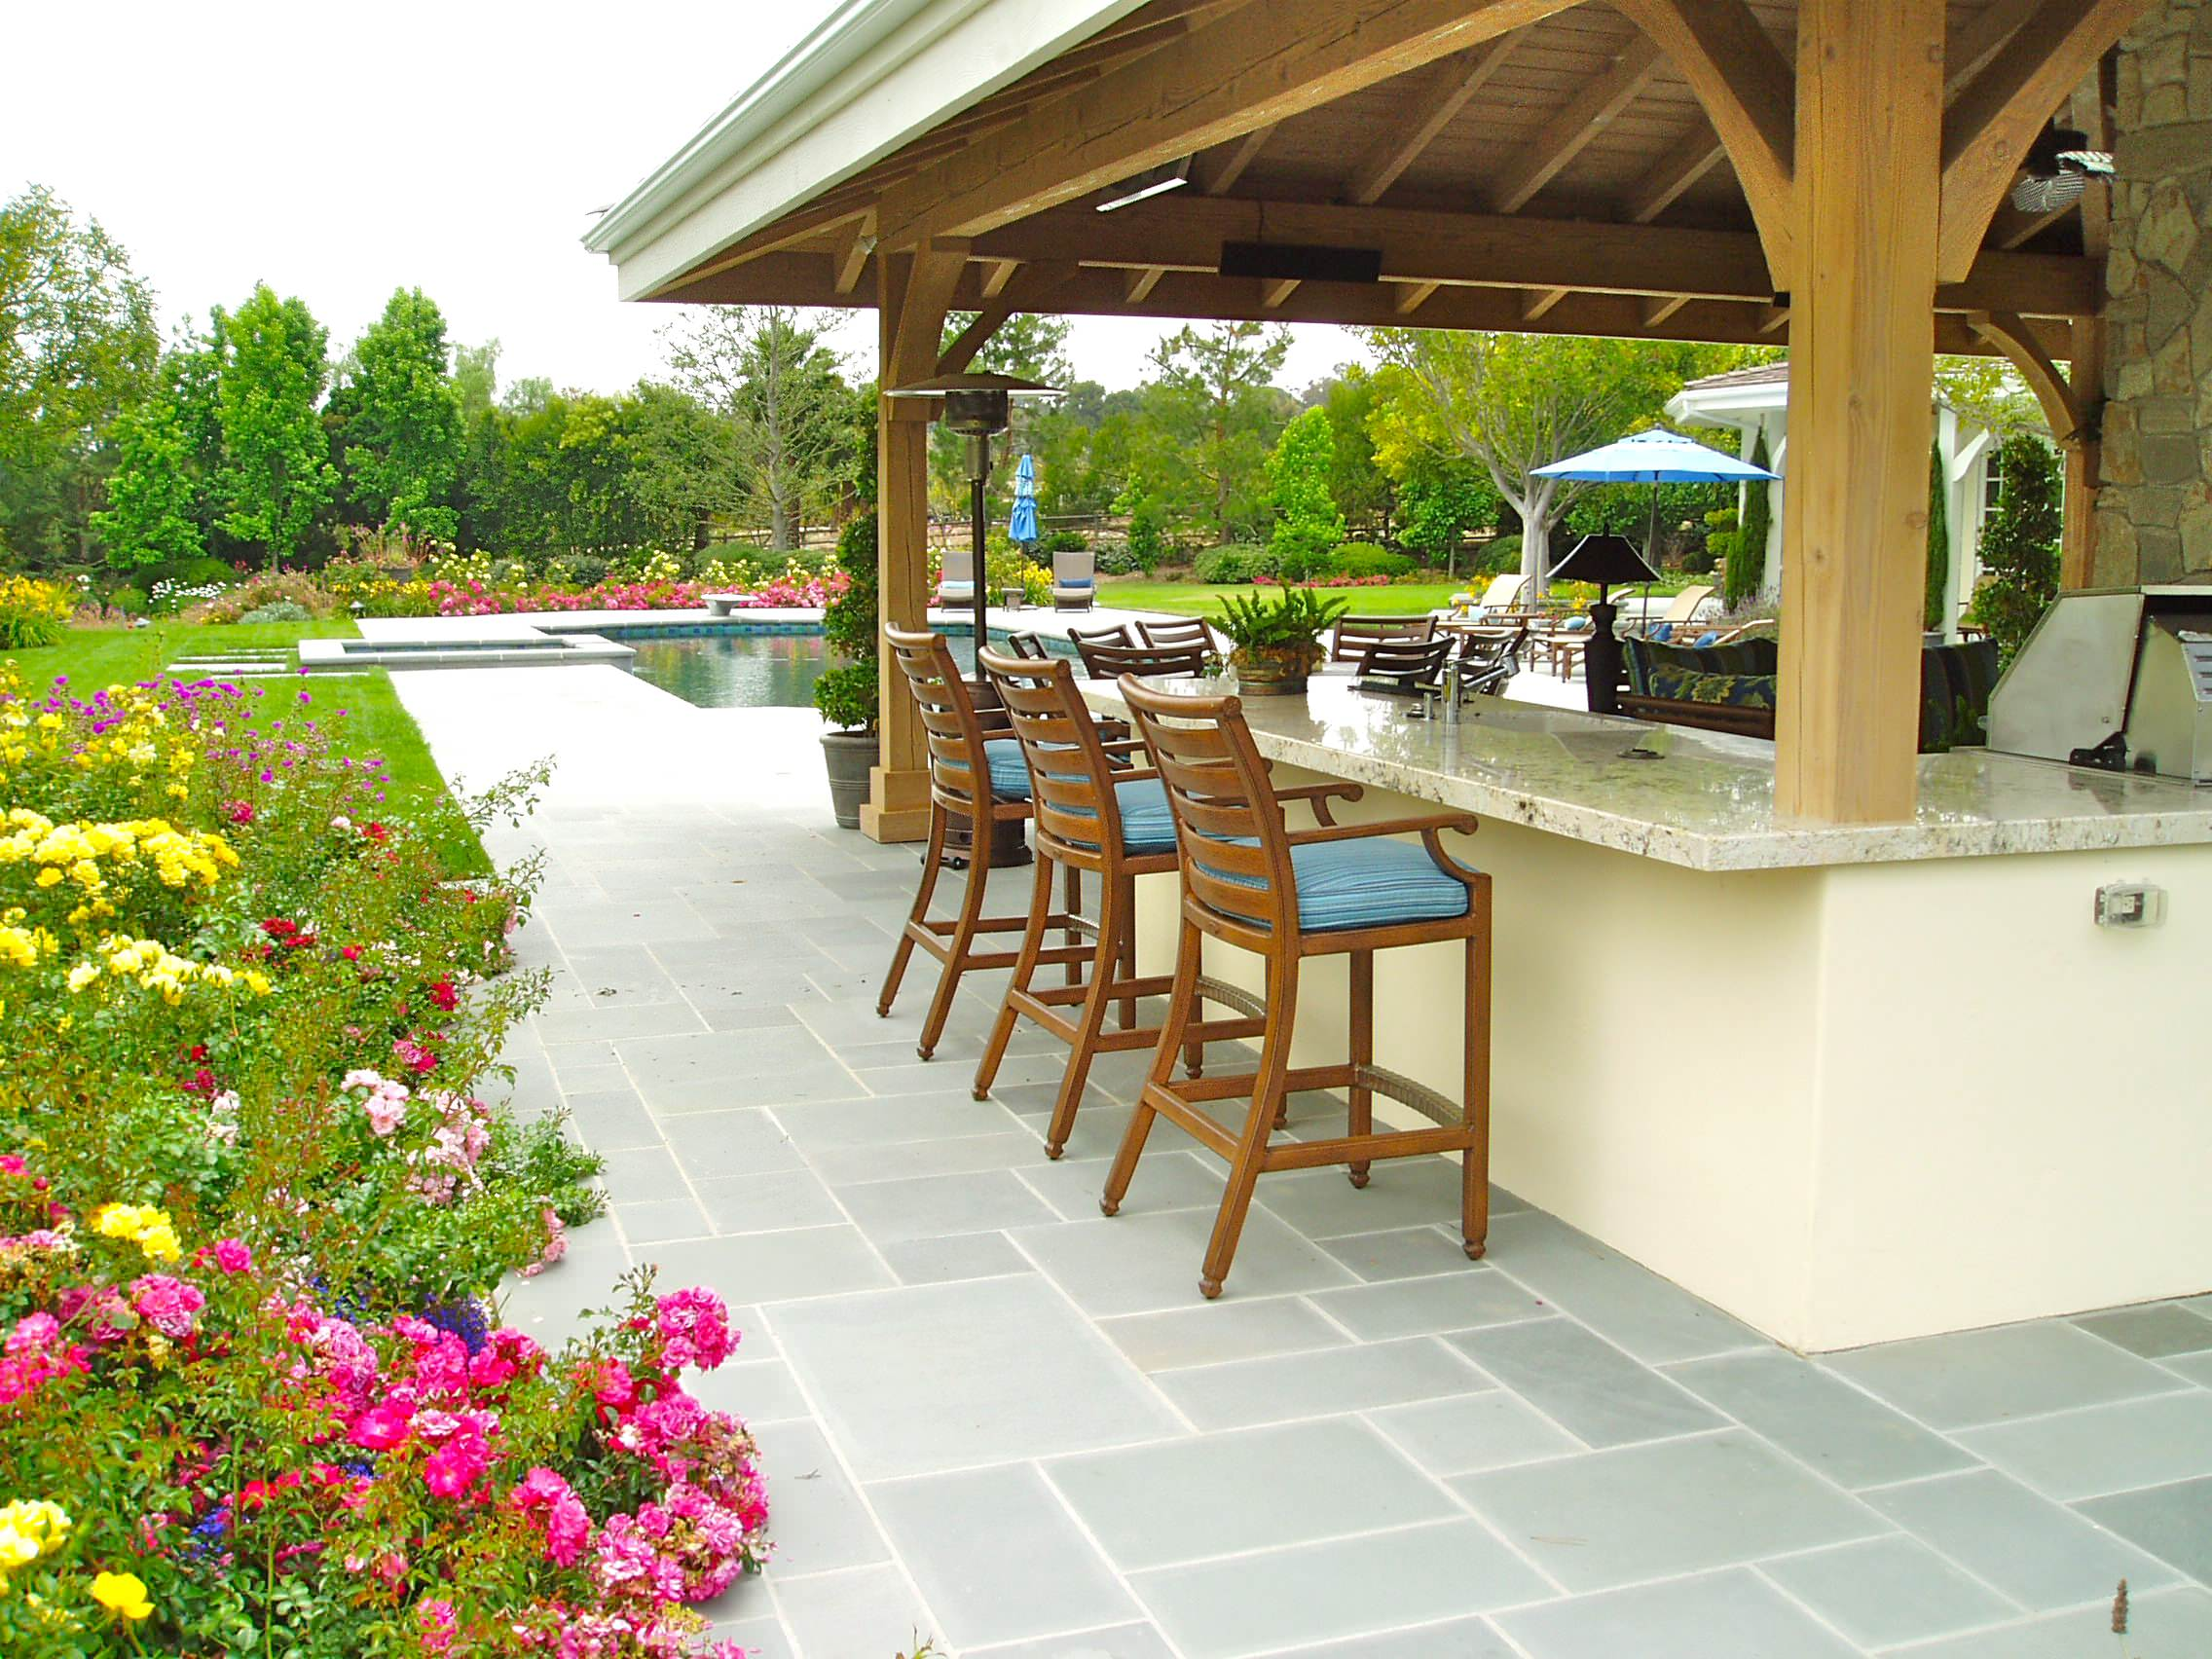 Bluestone Pavers Ideas For Patio Flooring: Granite Countertop Plus Bar  Stool For Outdoor Breakfast In